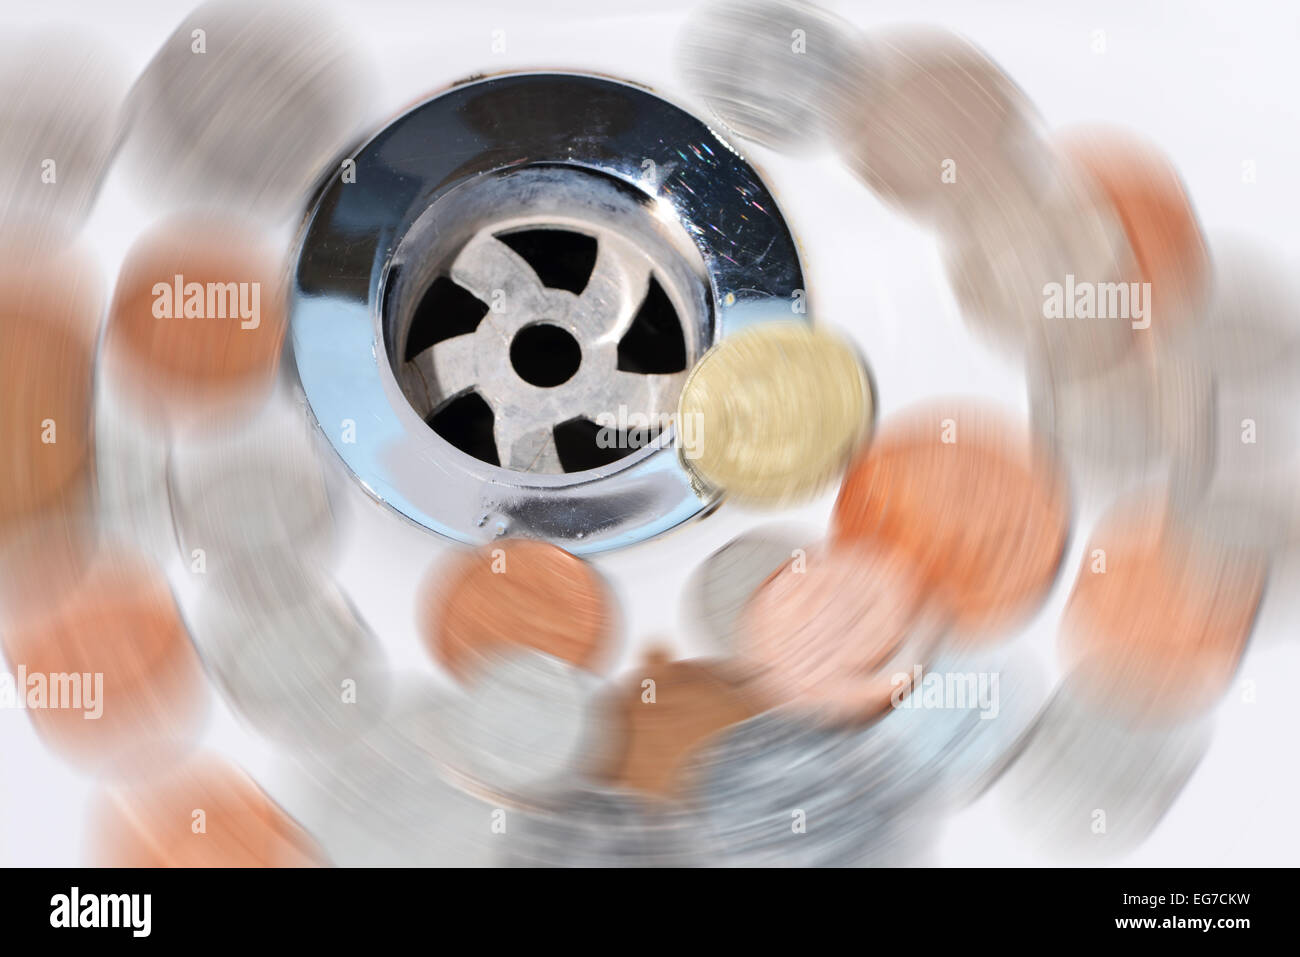 Wasted money going down the drain - Stock Image